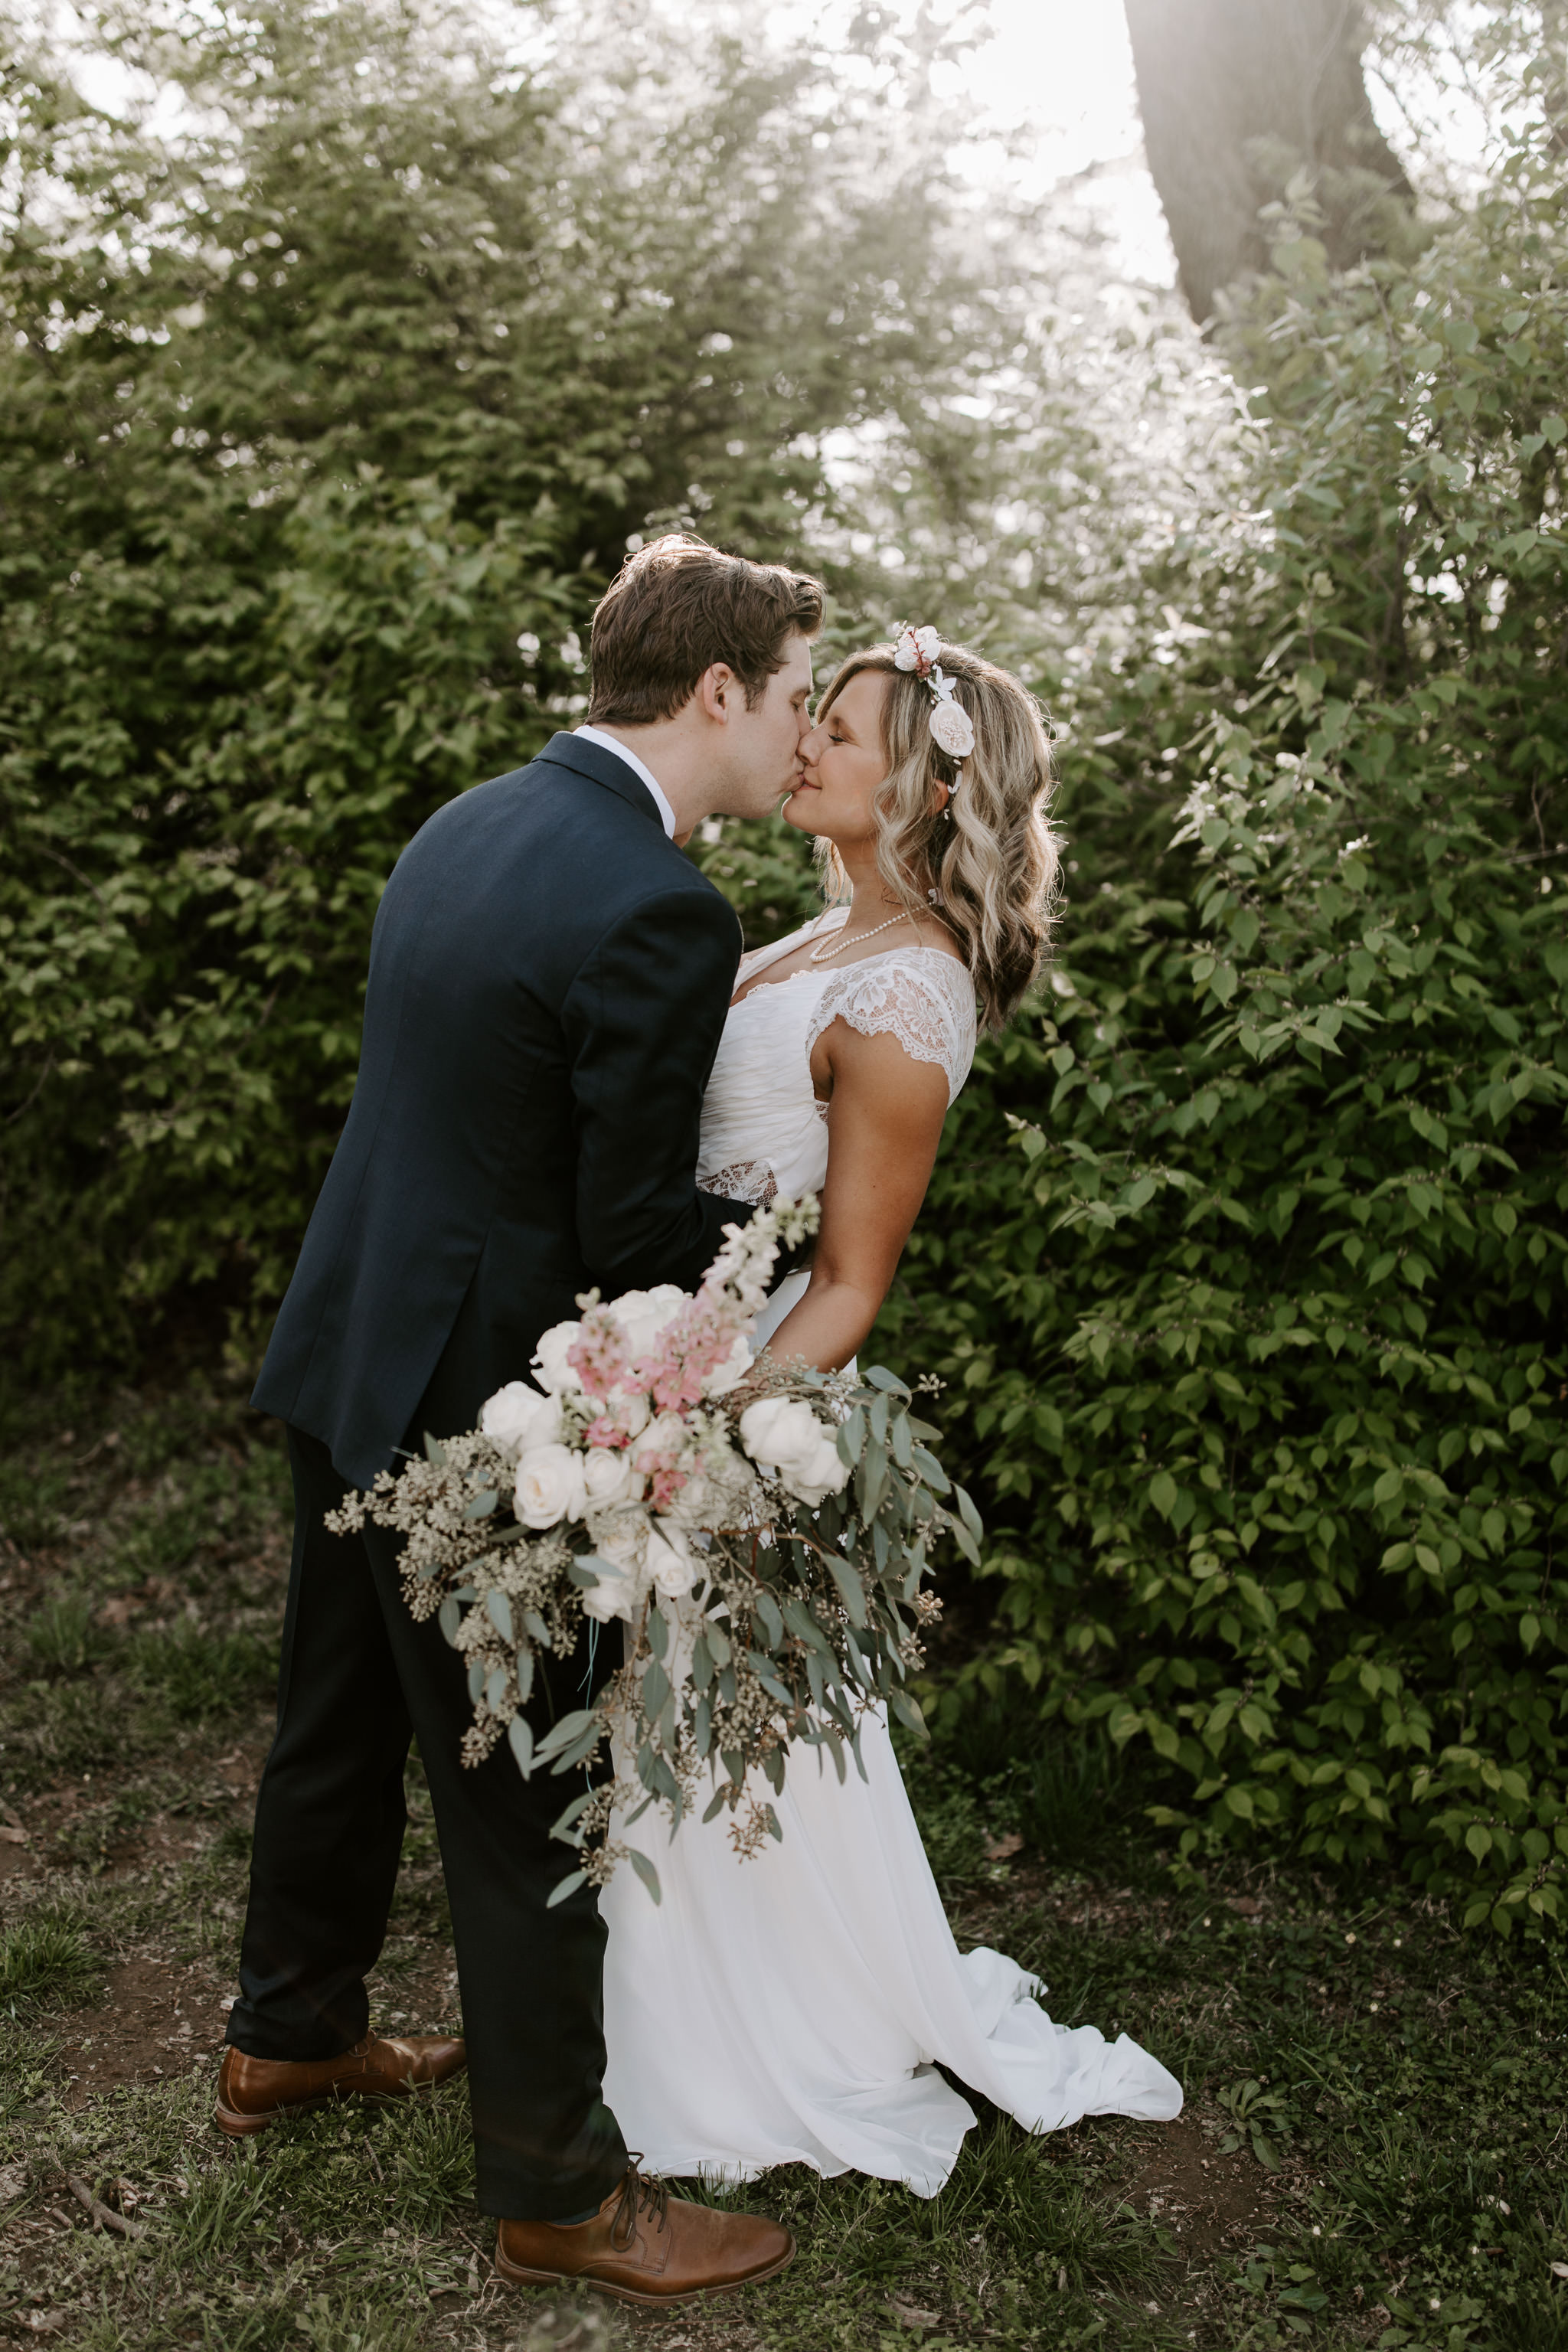 Bride and Groom wedding day portraits at Cool Springs House in Brentwood, Tennessee